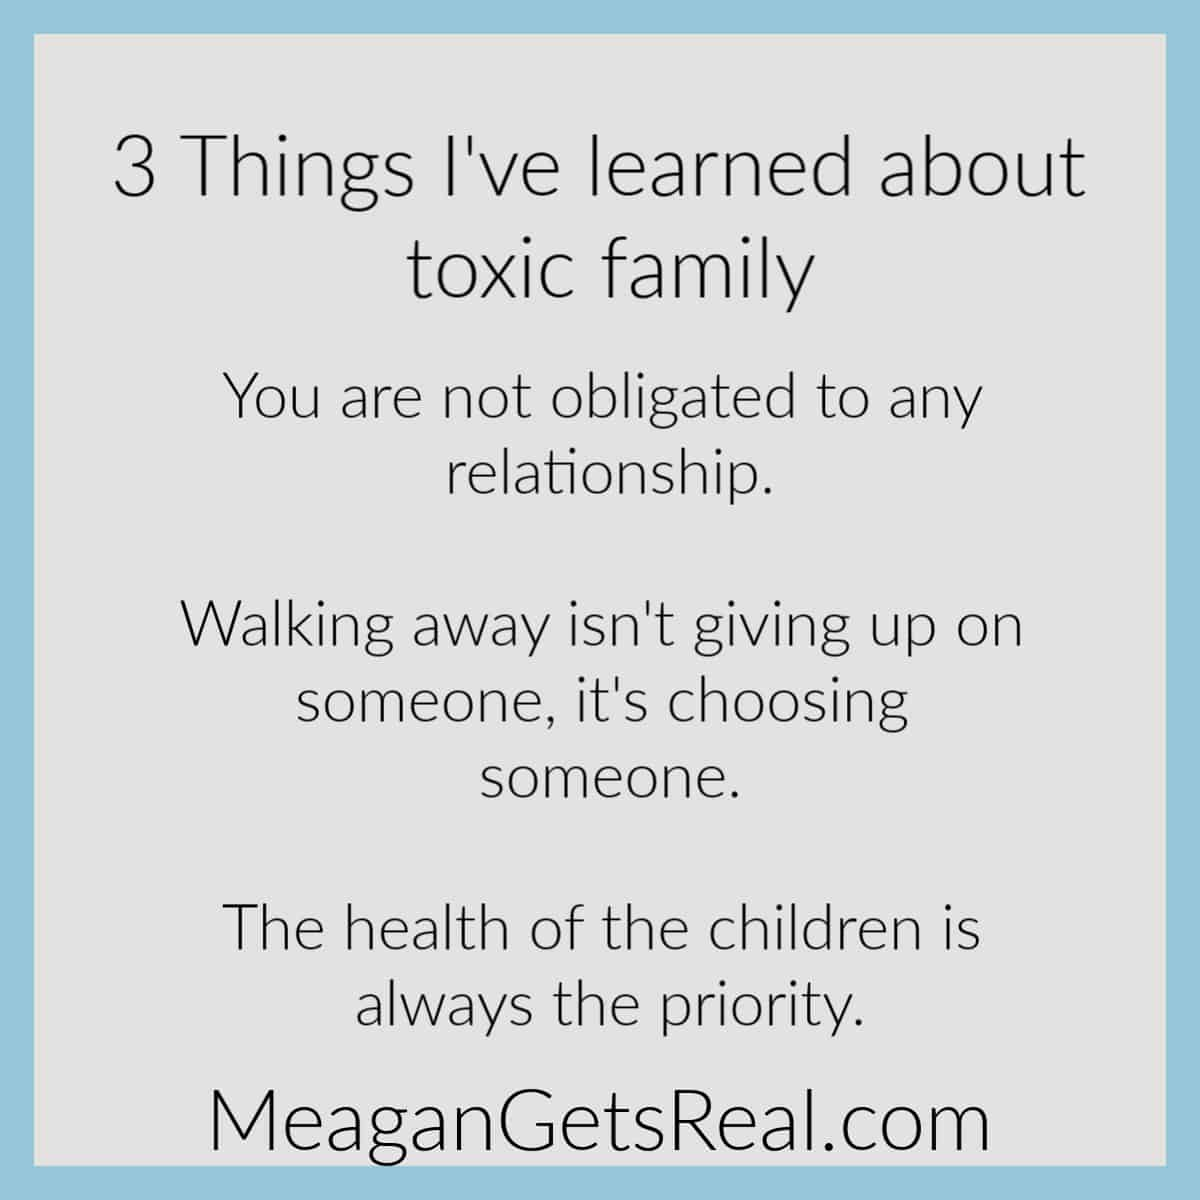 3 Things I've learned about toxic family. Support for moms doesn't have to be hard to find with this comprehensive guide filled with parenting resources for moms you won't want to miss.